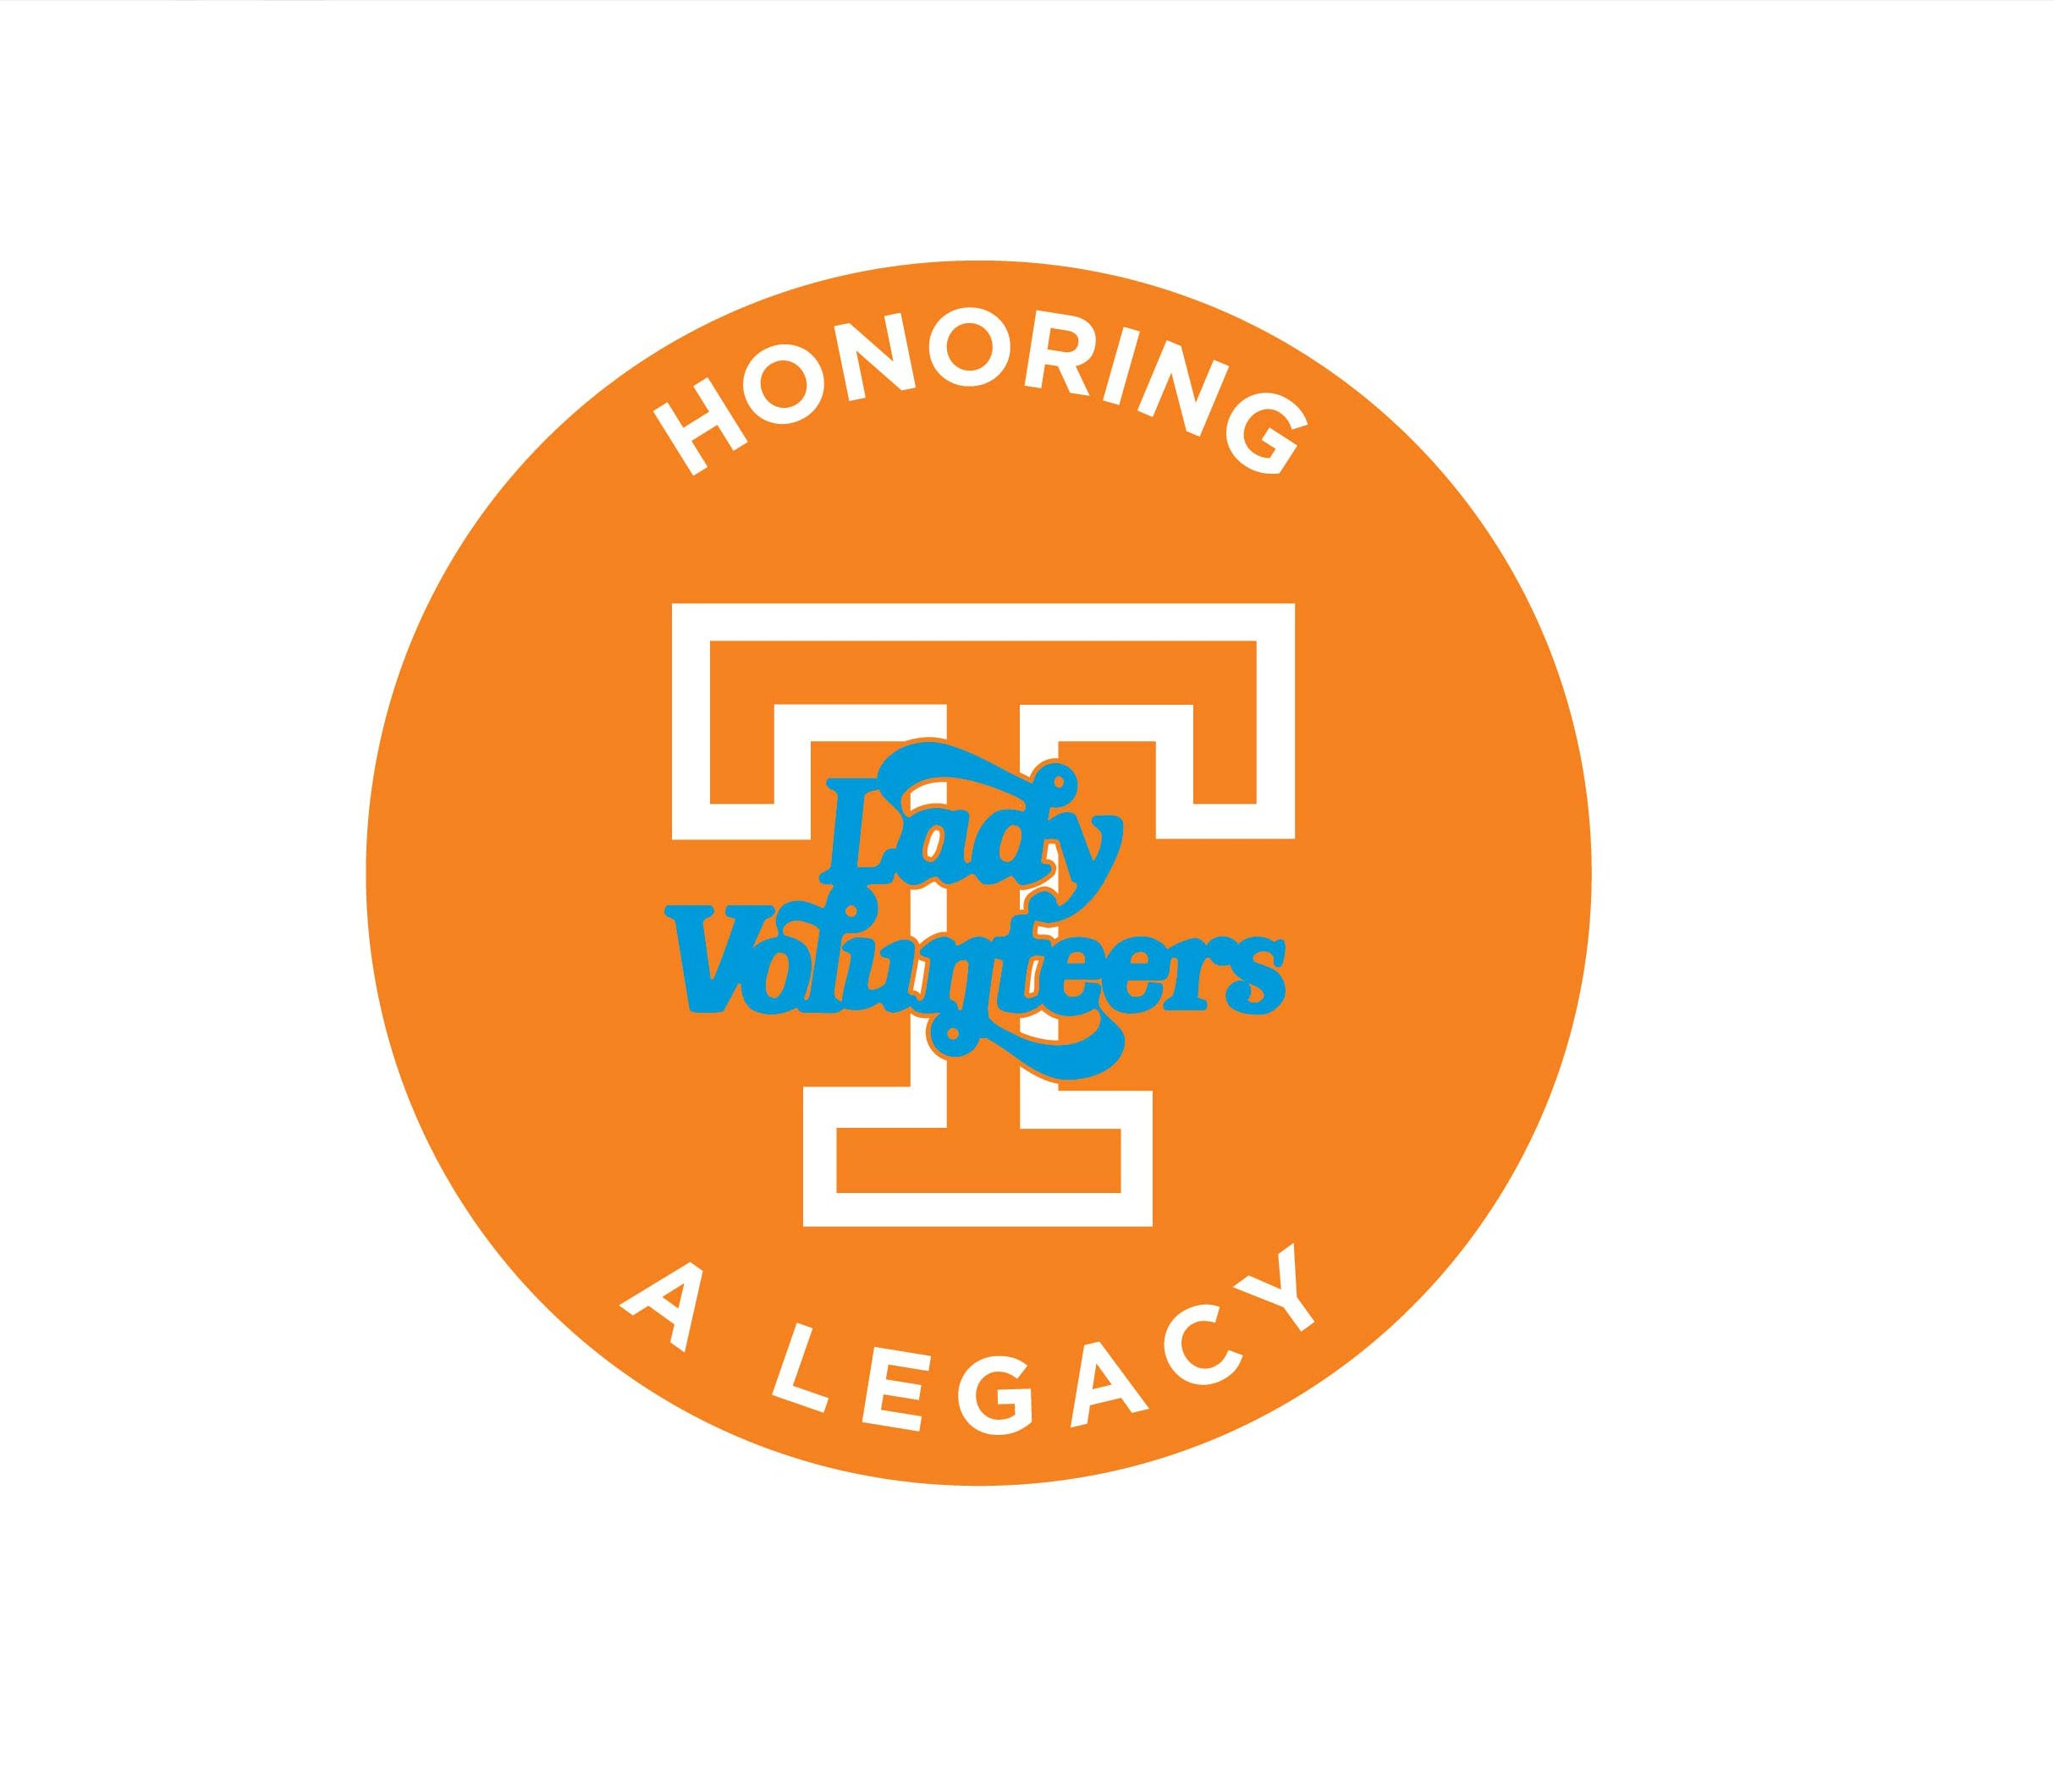 lady vols patch now available to public rh knoxnews com Nike Logo Wallpaper Cool Nike Logos